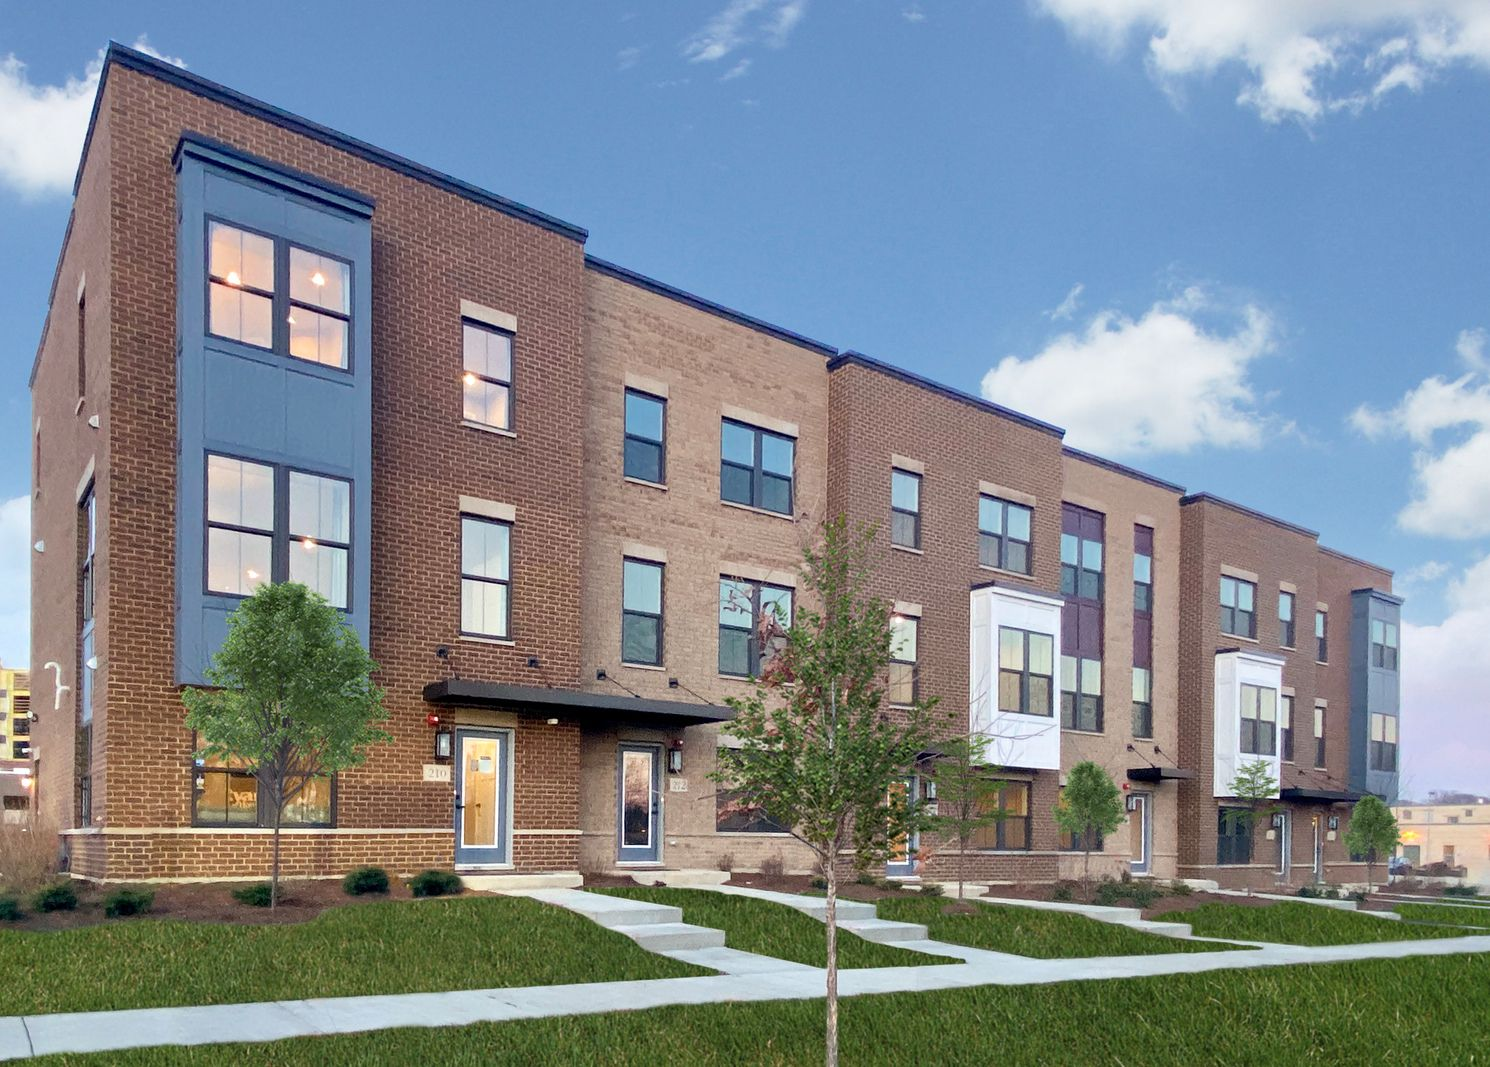 Luxury Rowhomes walkable to charming Downtown Mt. Prospect:Welcome to Maple Street Rowhomes! Own a brand new townhome with included luxury finishes. Walk to the Metra, Lions Park, schools, and charming Downtown Mt. Prospect.Schedule your visittoday!